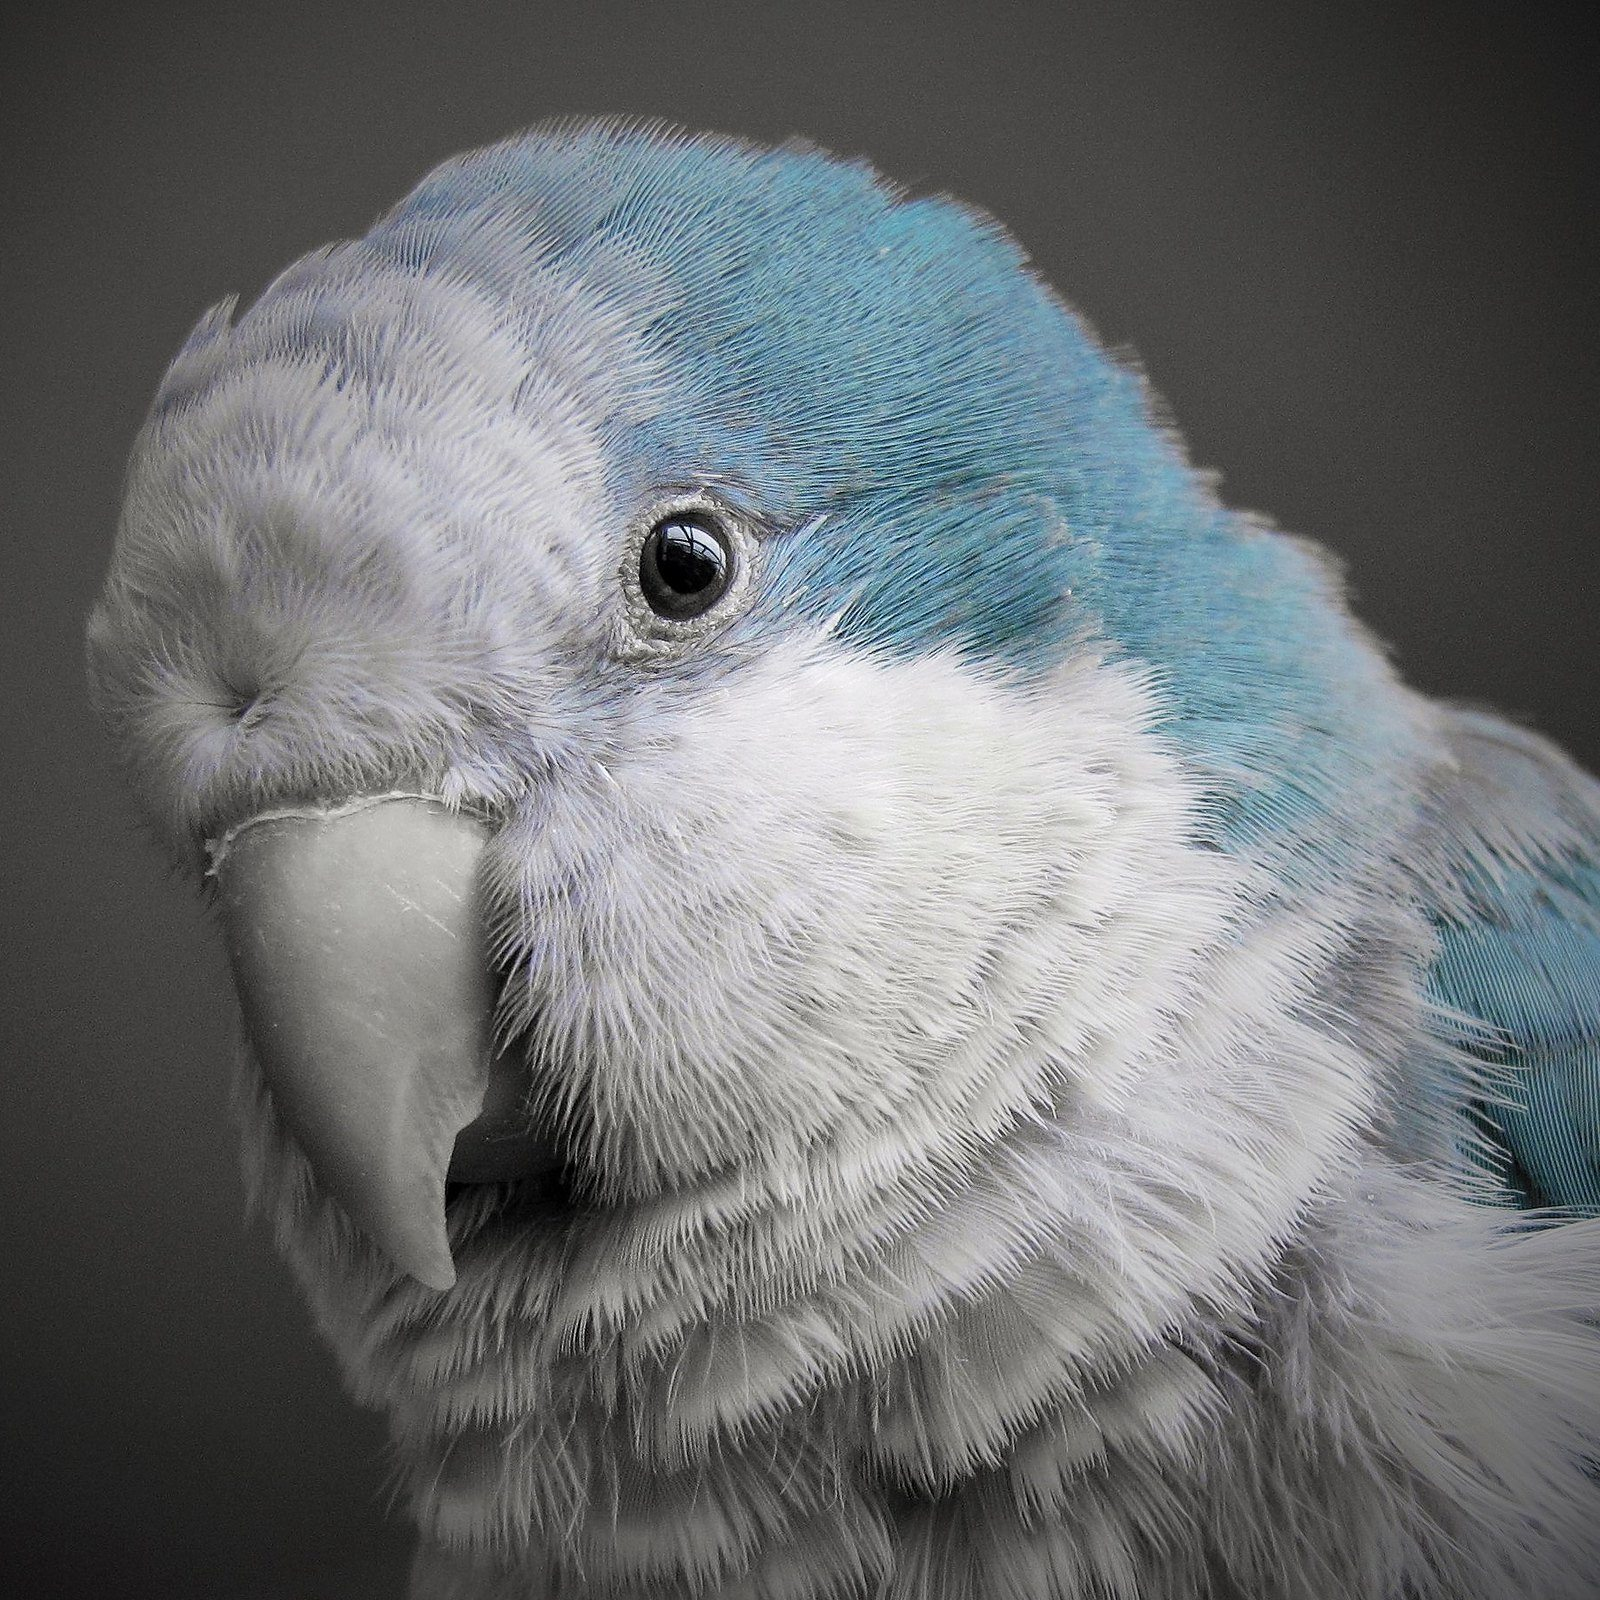 Blue Quaker Parrot